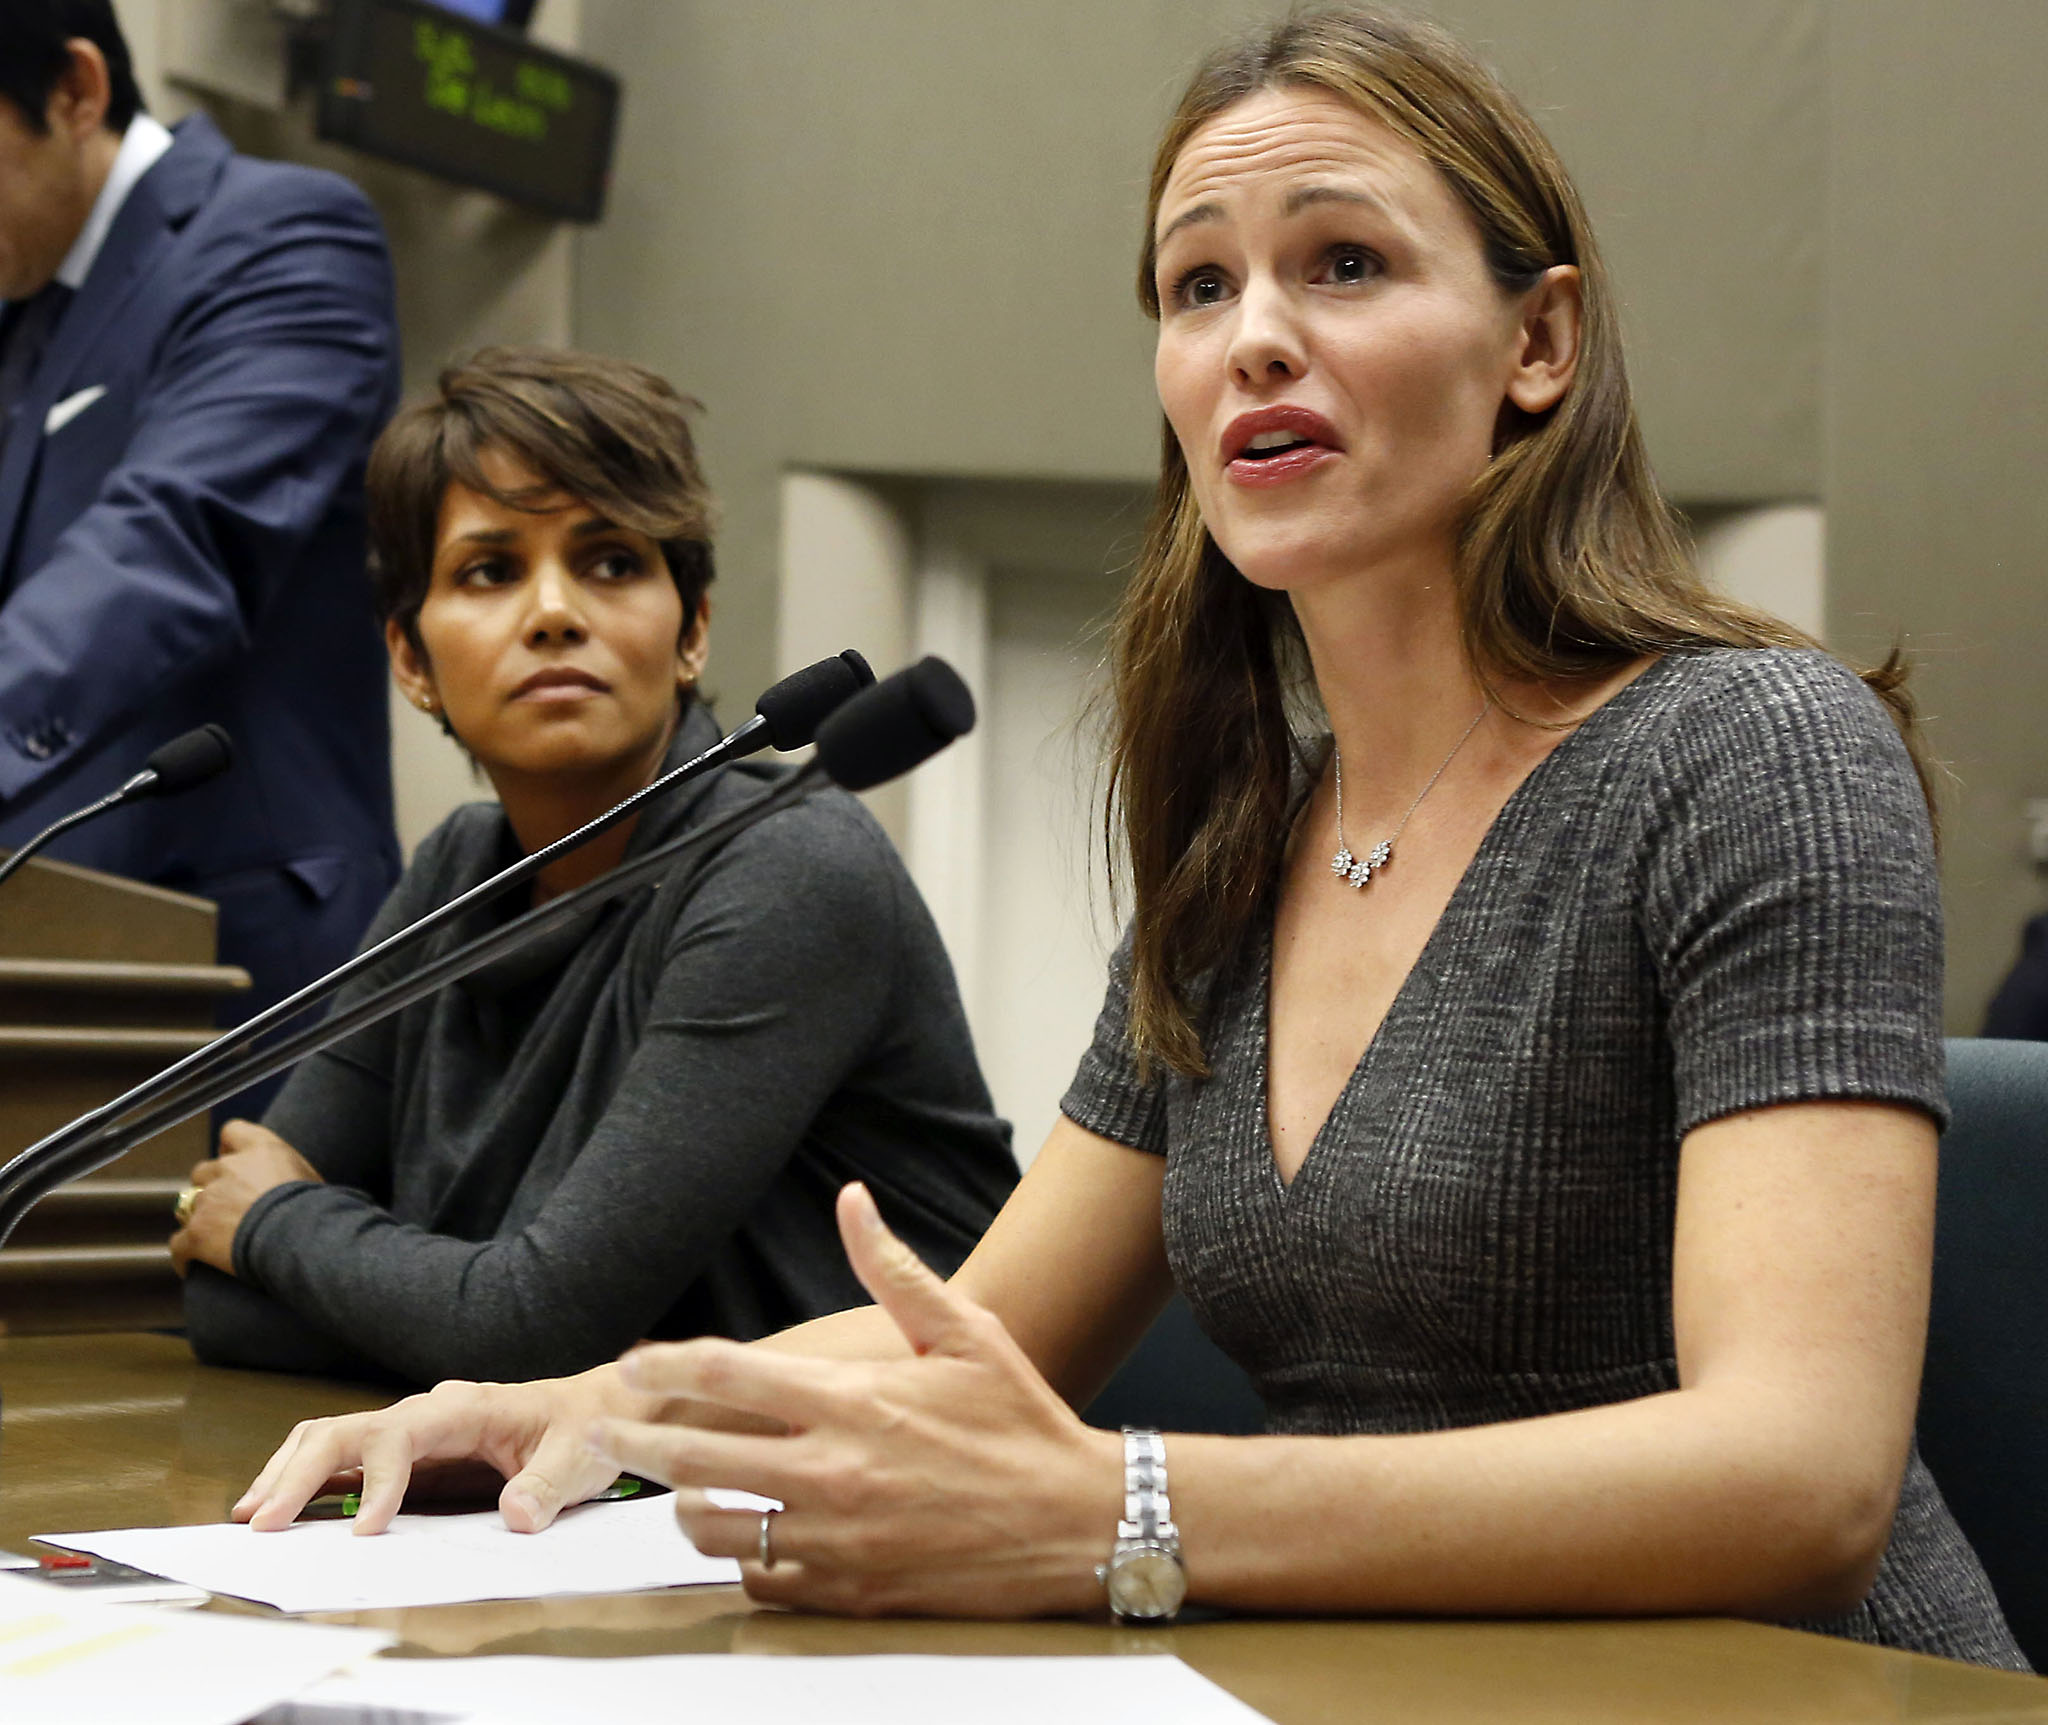 Halle Berry and Jennifer Garner on August 13 (AP Photo)